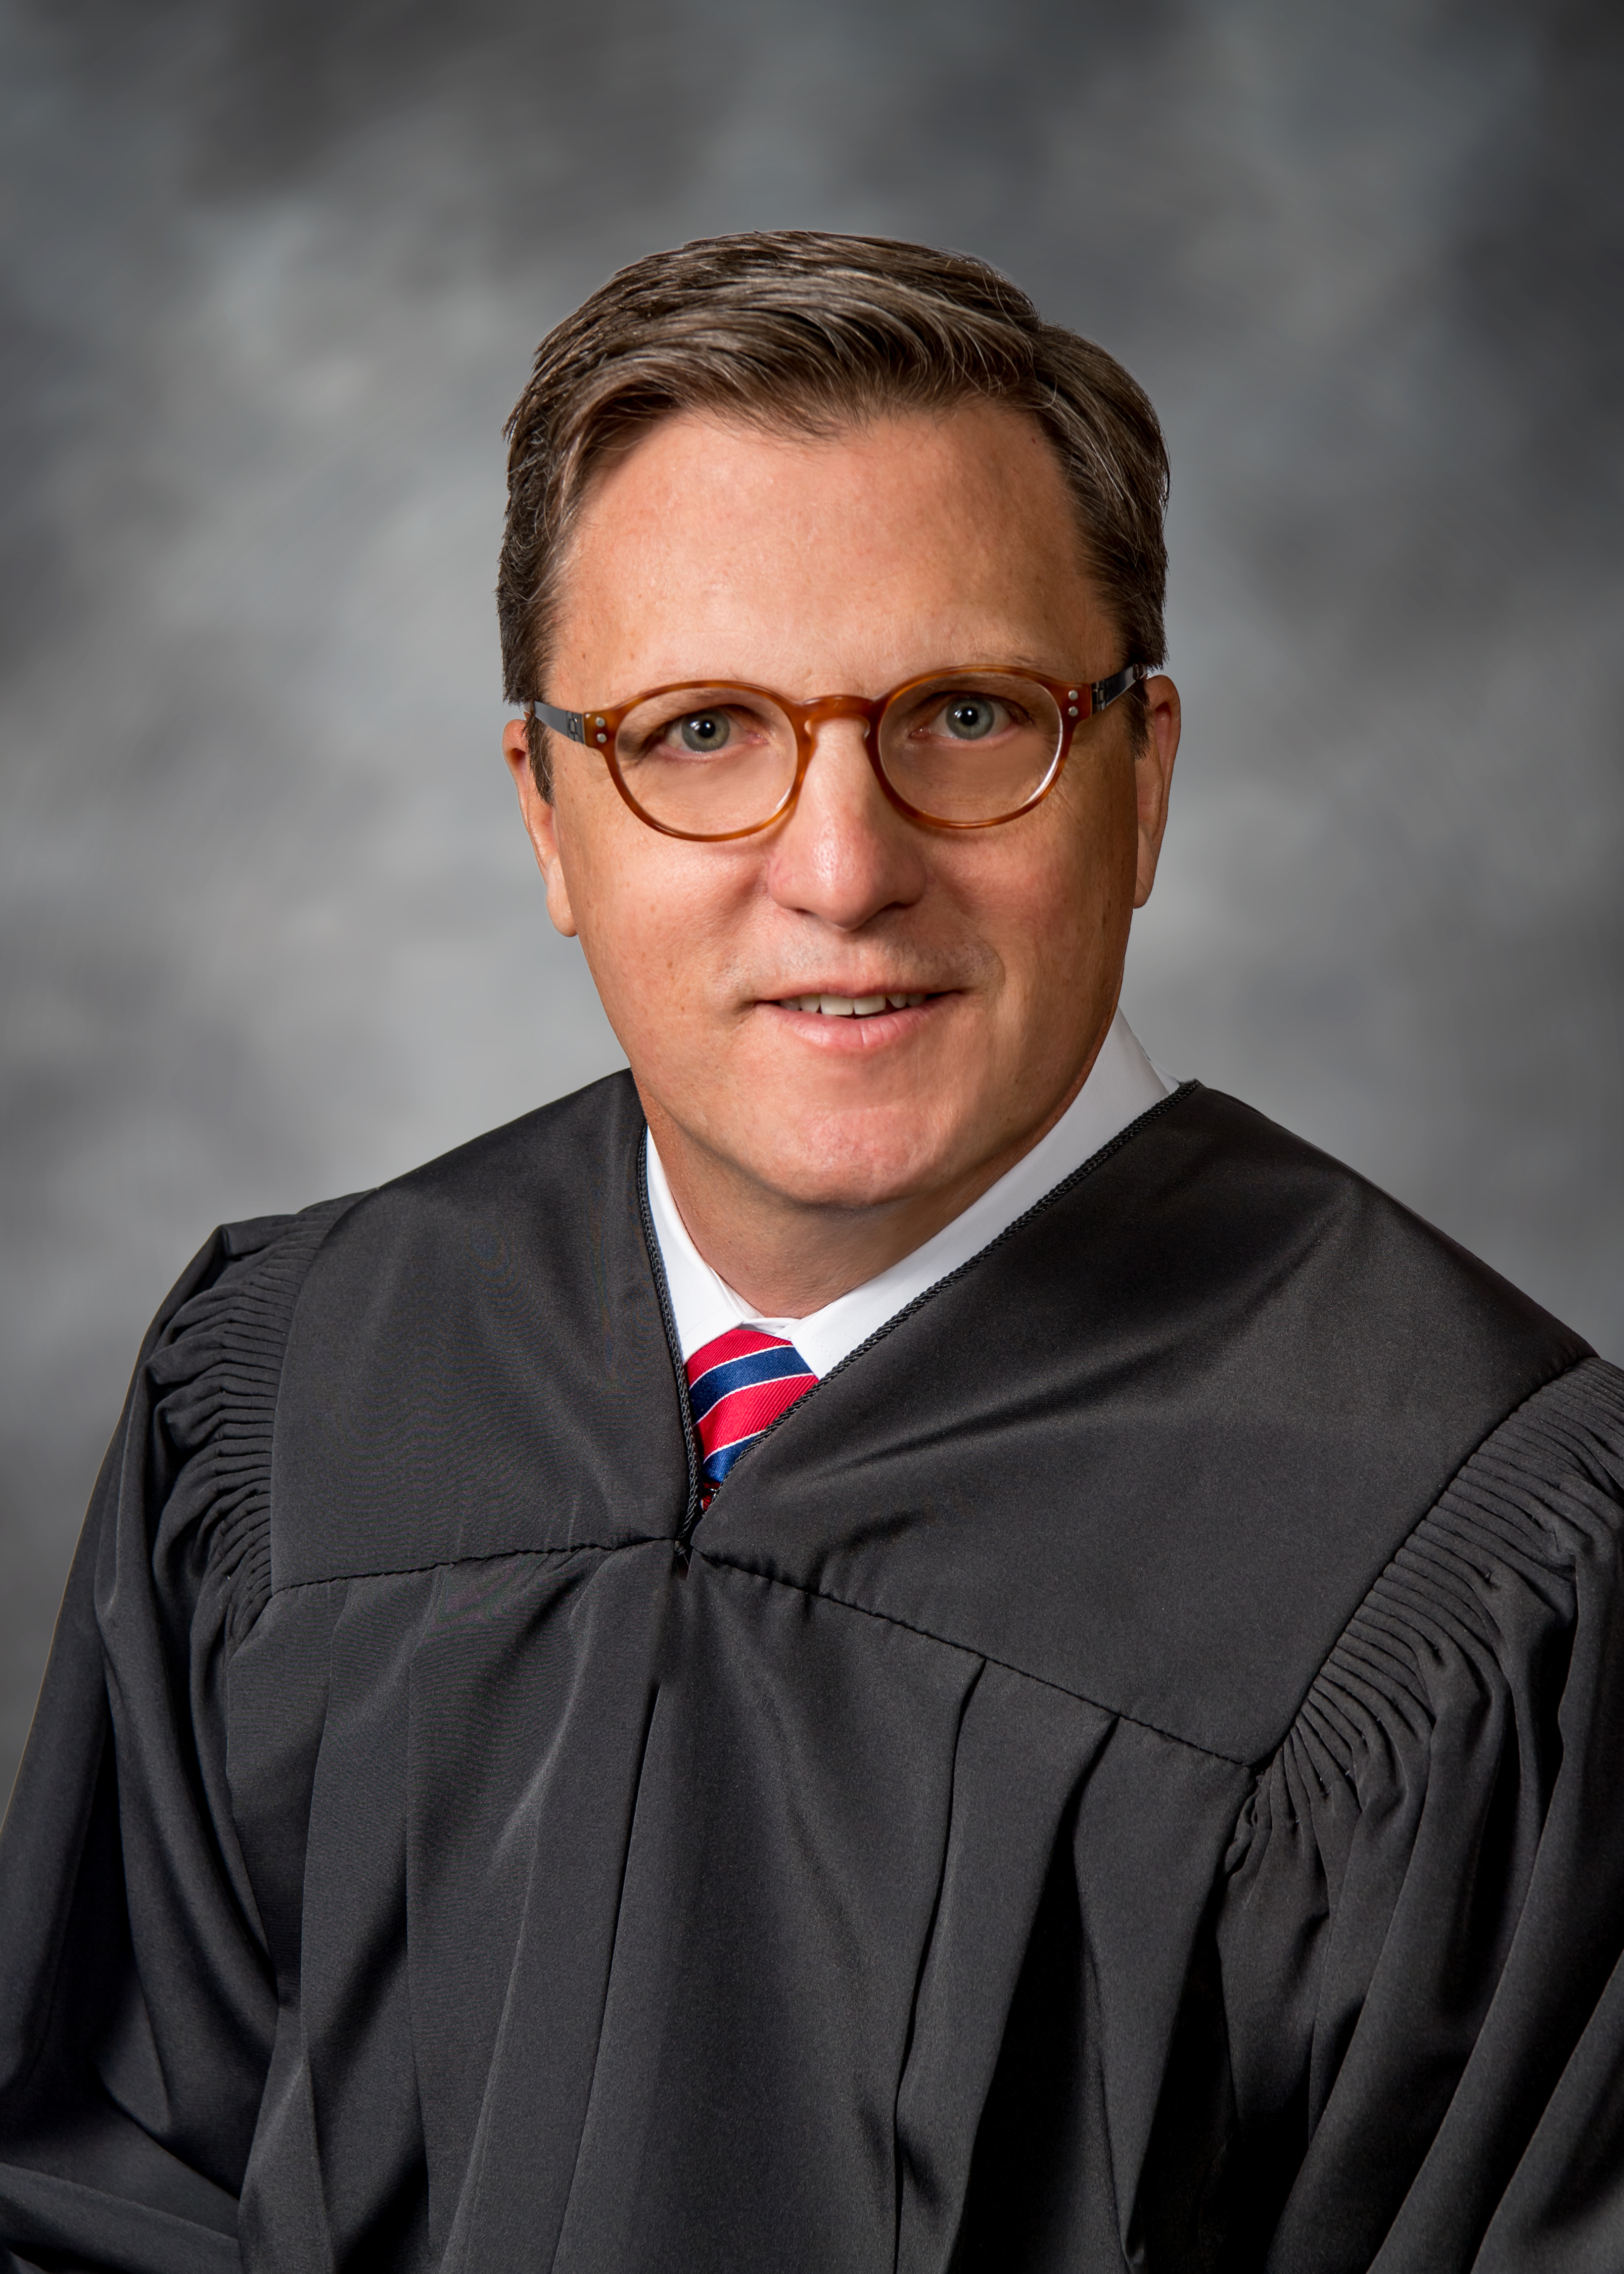 Peter A. Krause, Associate Justice